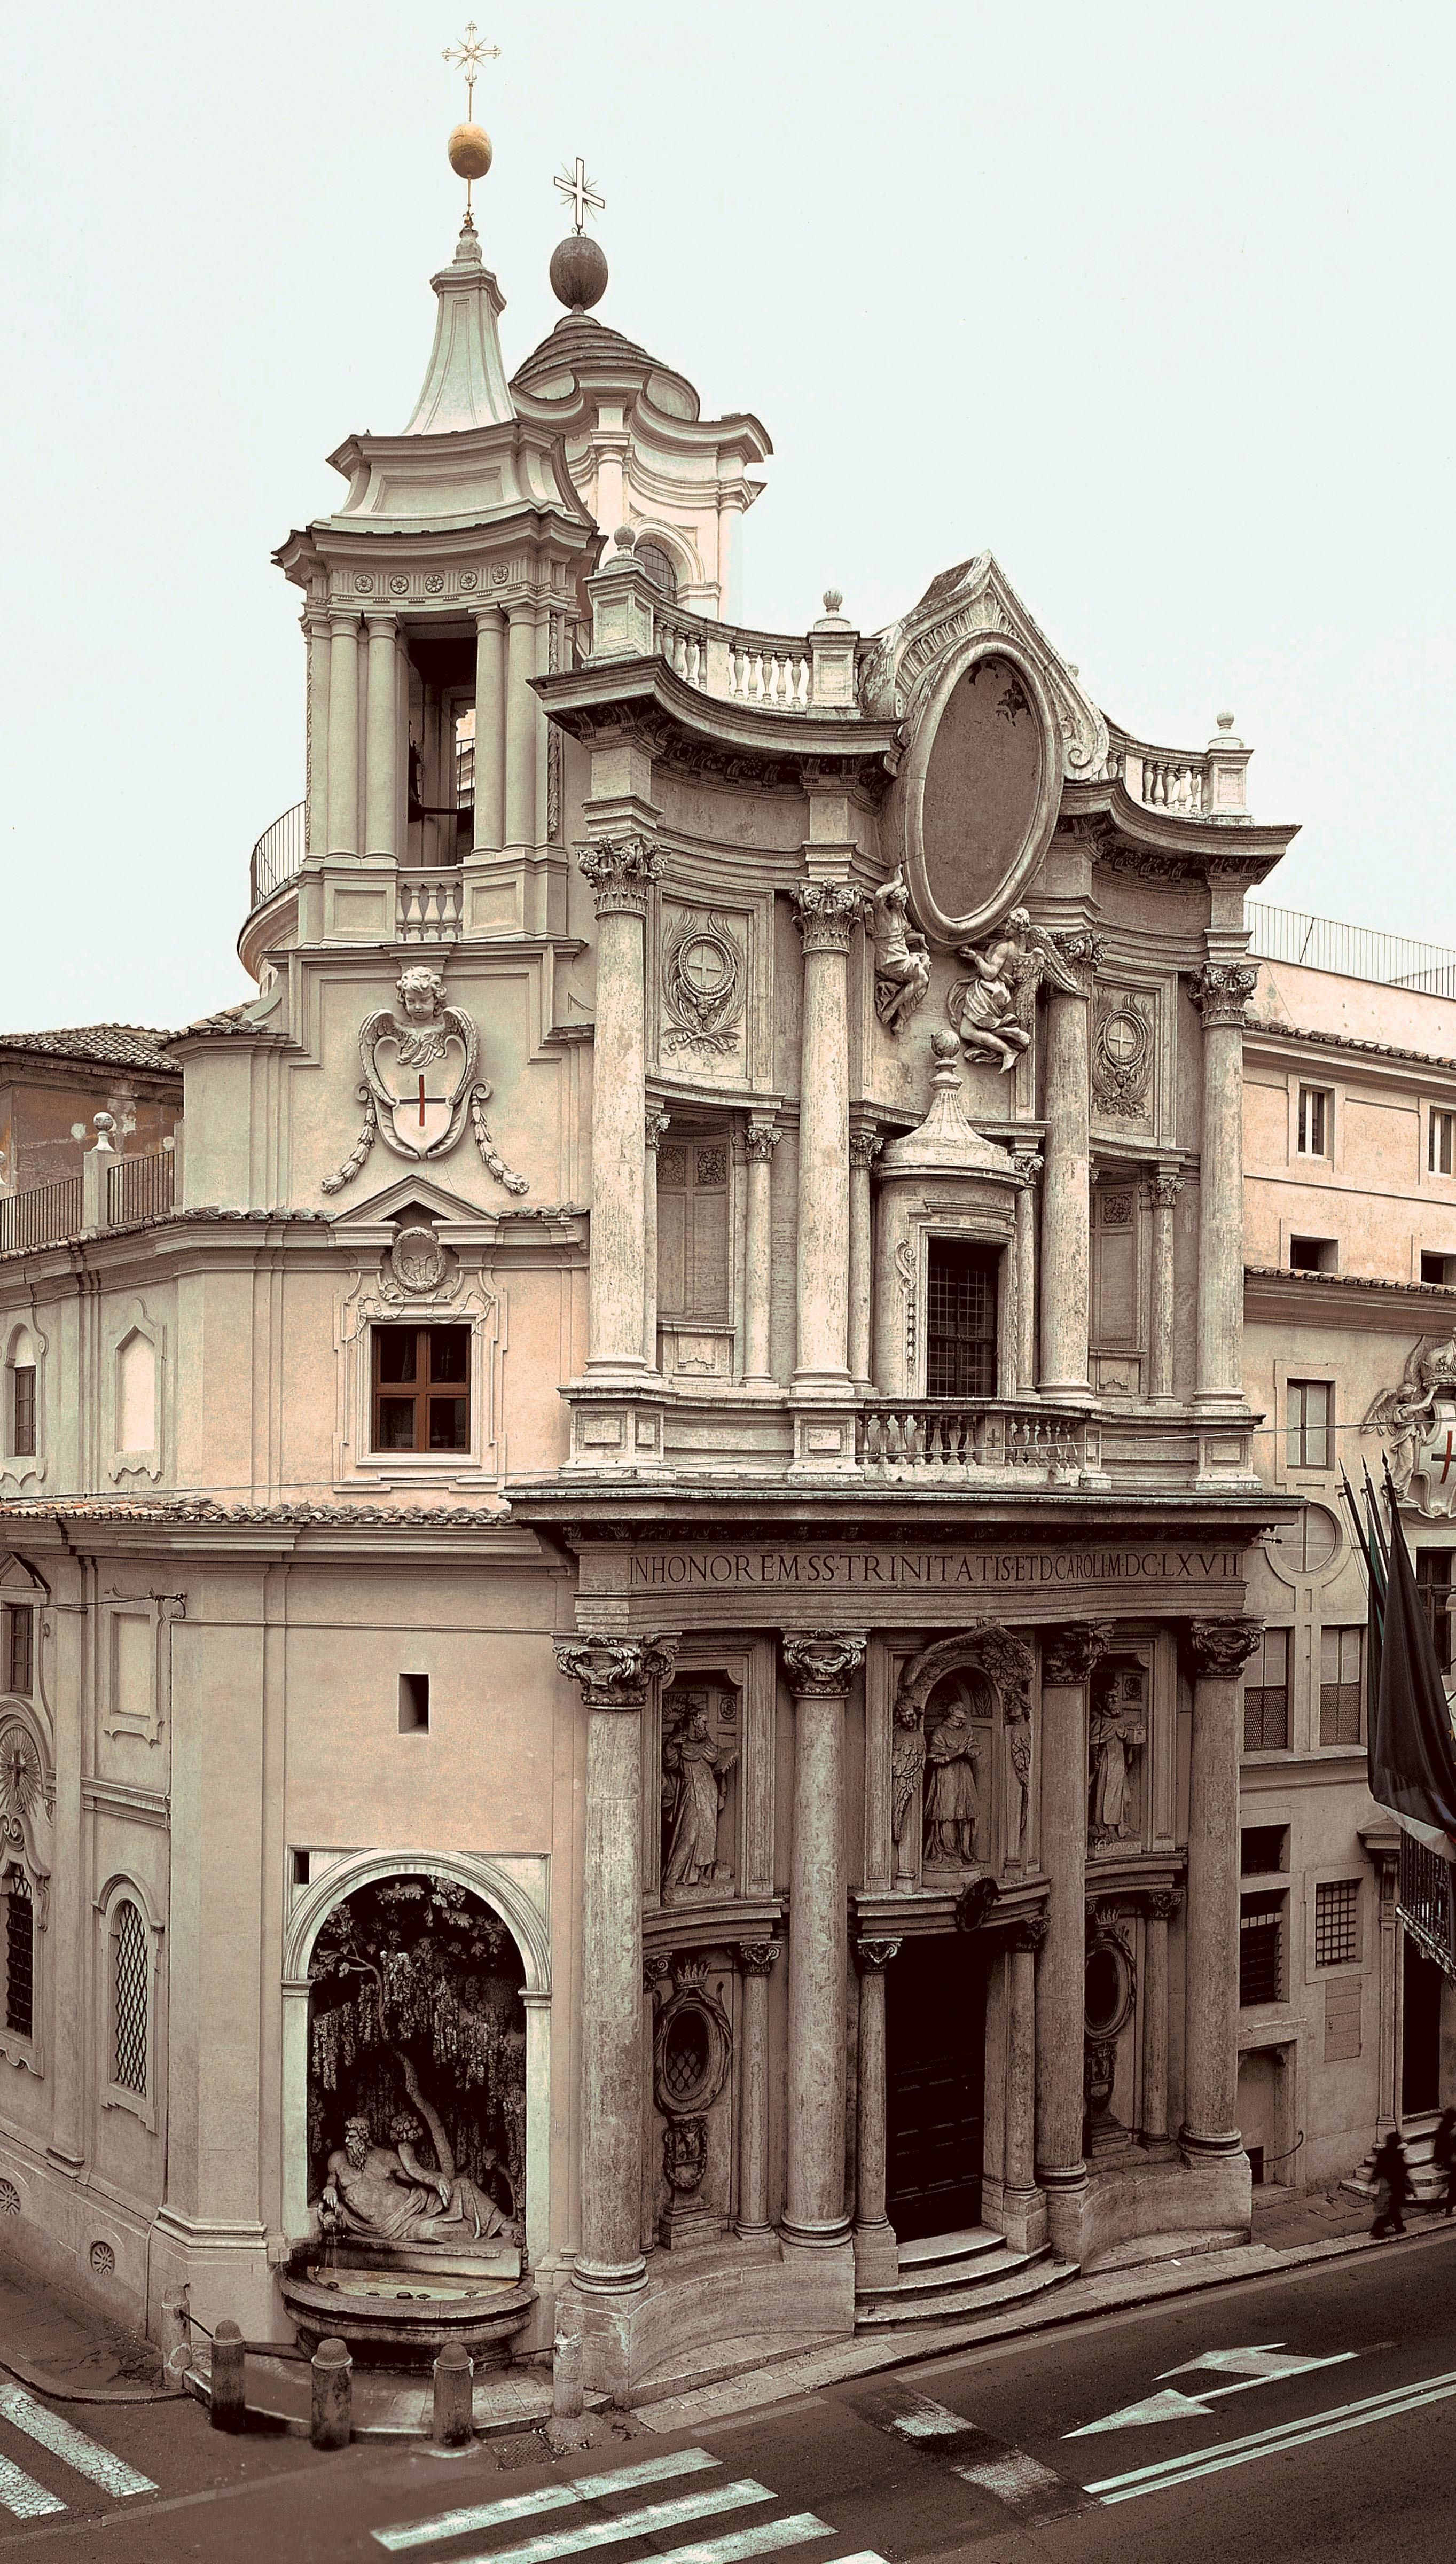 Rancesco borromini san carlo alle quattro fontane bing for Italian baroque architecture